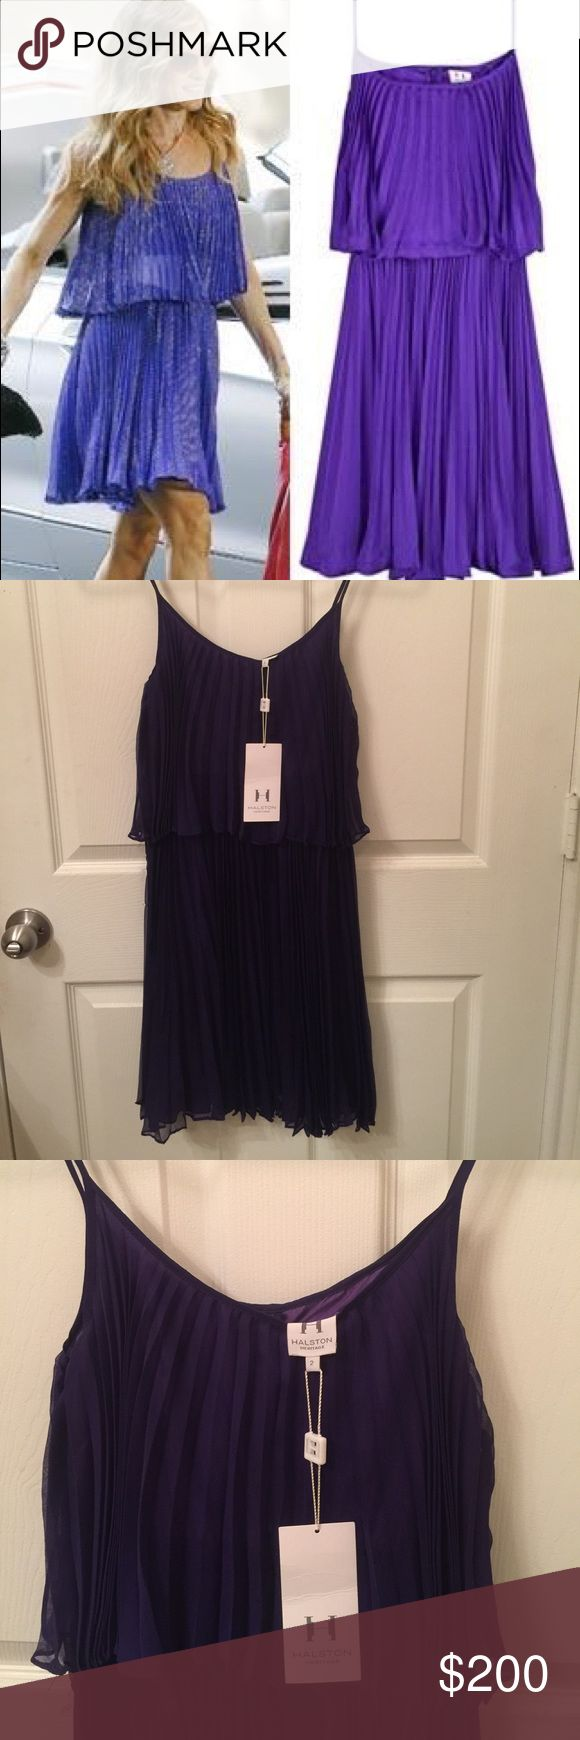 NWT - Halston Pleat dresss Just like the one Carrie Bradshaw had except this is non-metallic. The purple is brighter in daylight. Halston Heritage Dresses